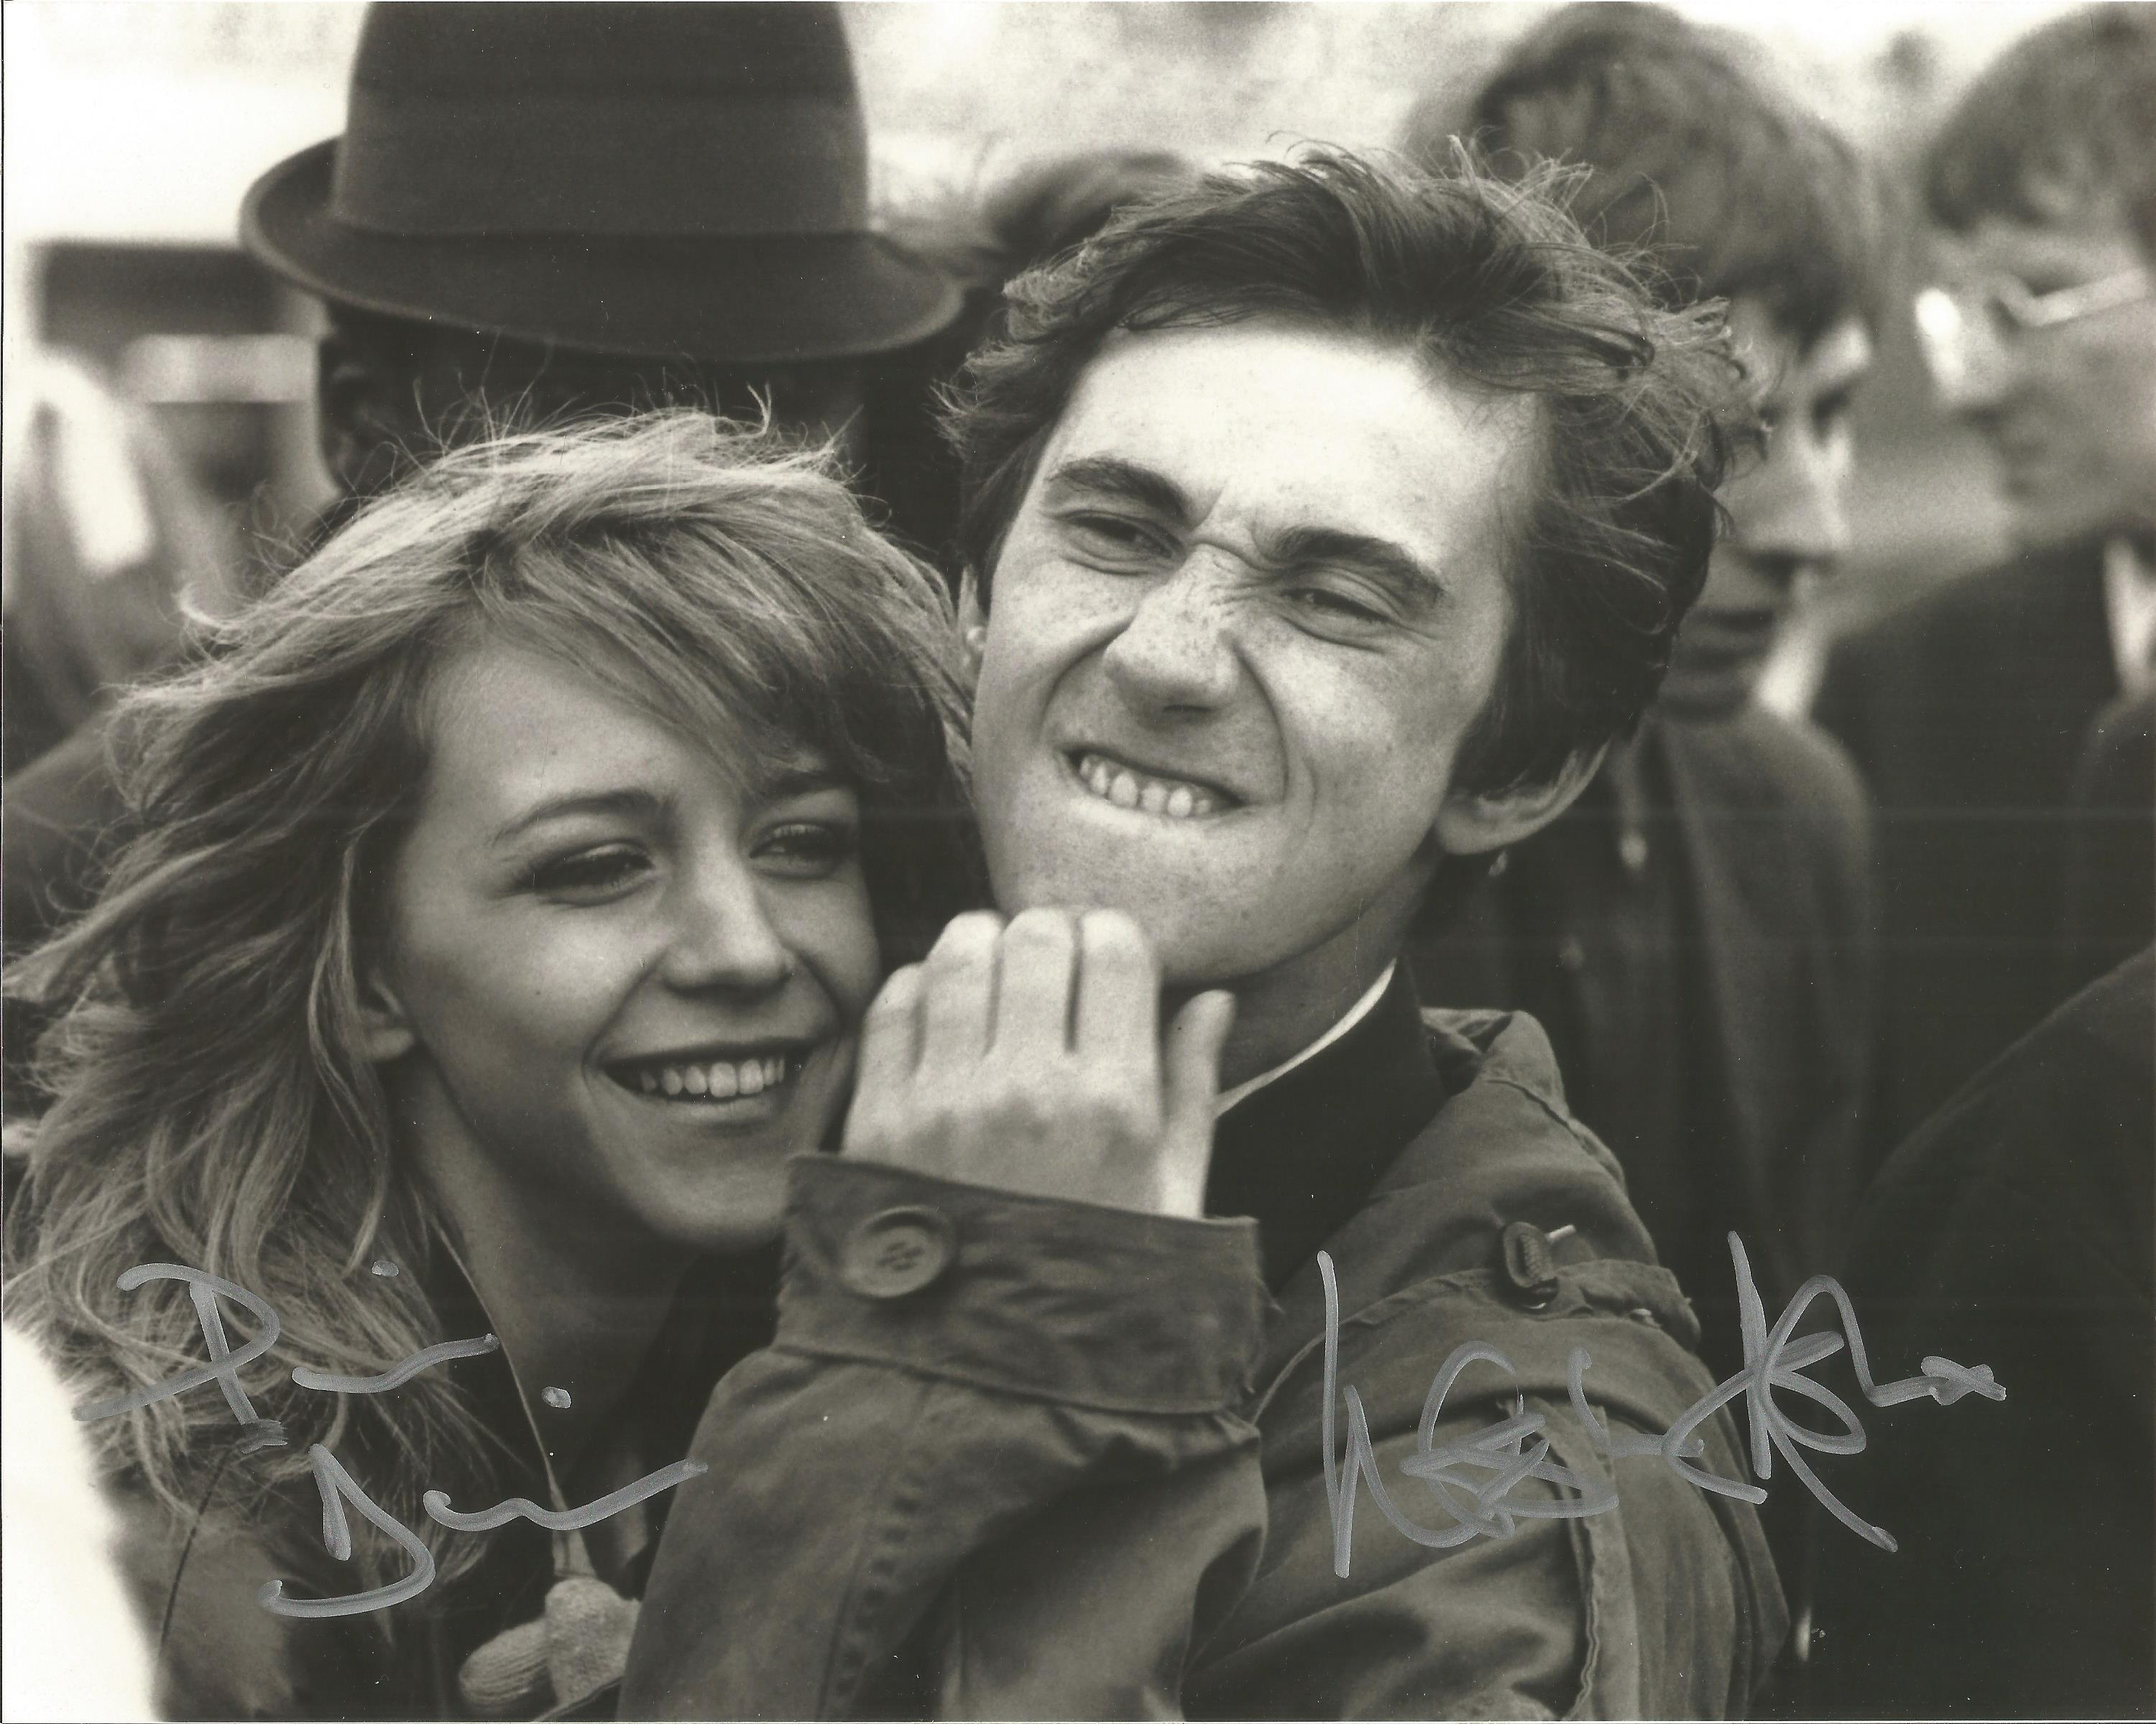 Phil Daniels and Leslie Ash signed 10x8 black and white image. Quadrophenia is a 1979 British